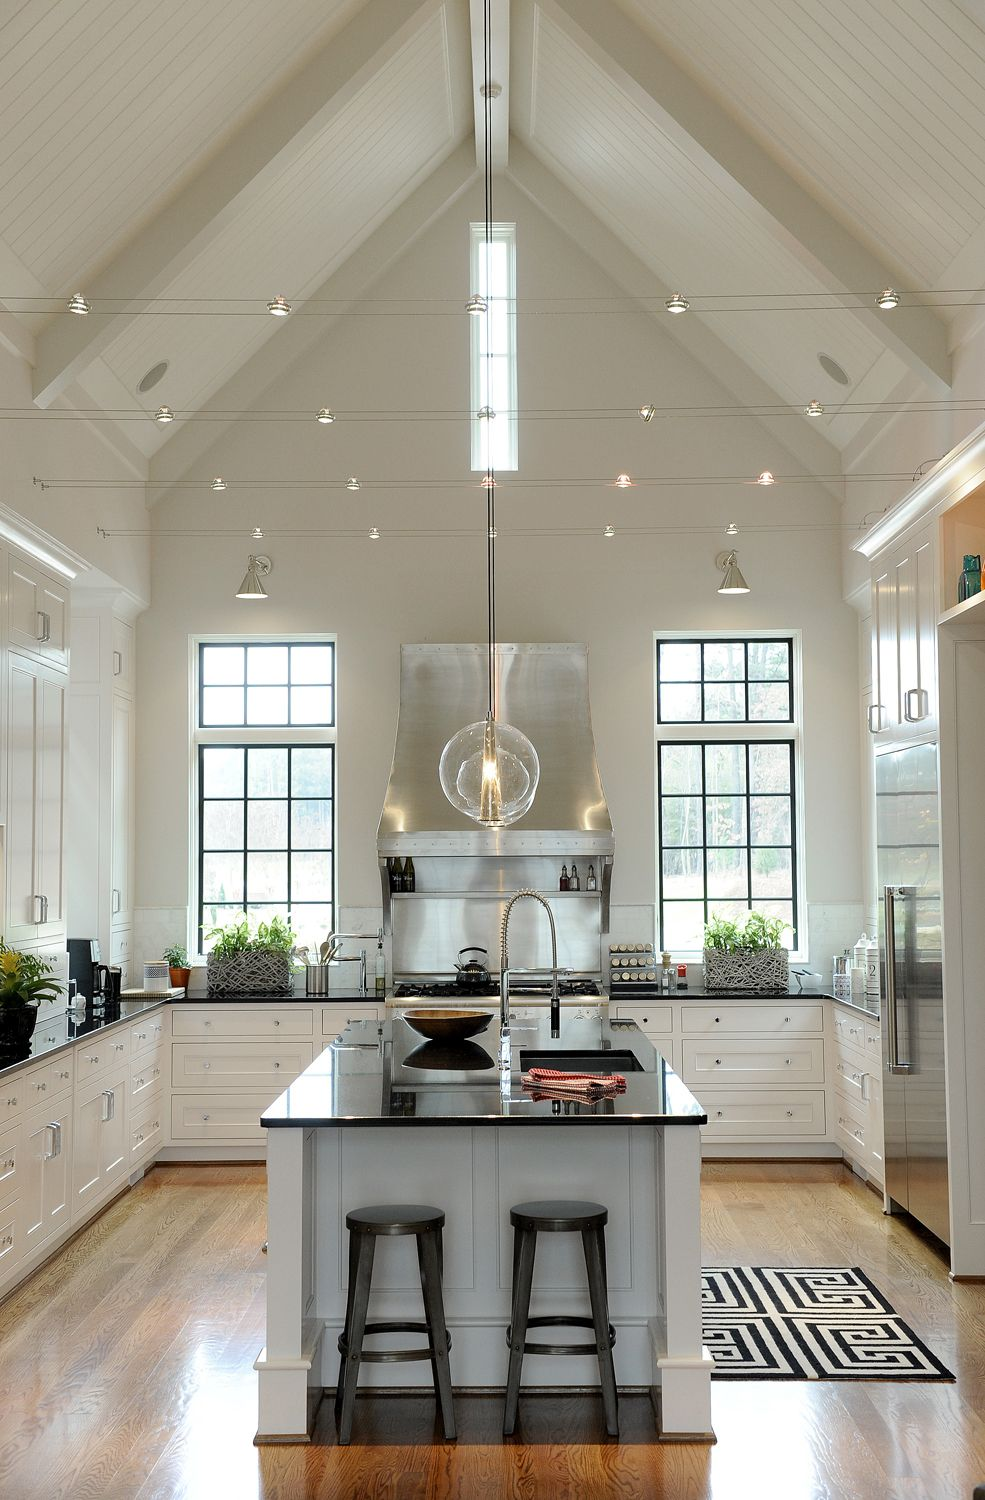 Kitchen Lighting Ideas Vaulted Ceiling Kitchen Lighting Vaulted Ceiling Vaulted Ceiling Kitchen Kitchen Ceiling Lights Pink Kitchen Decor